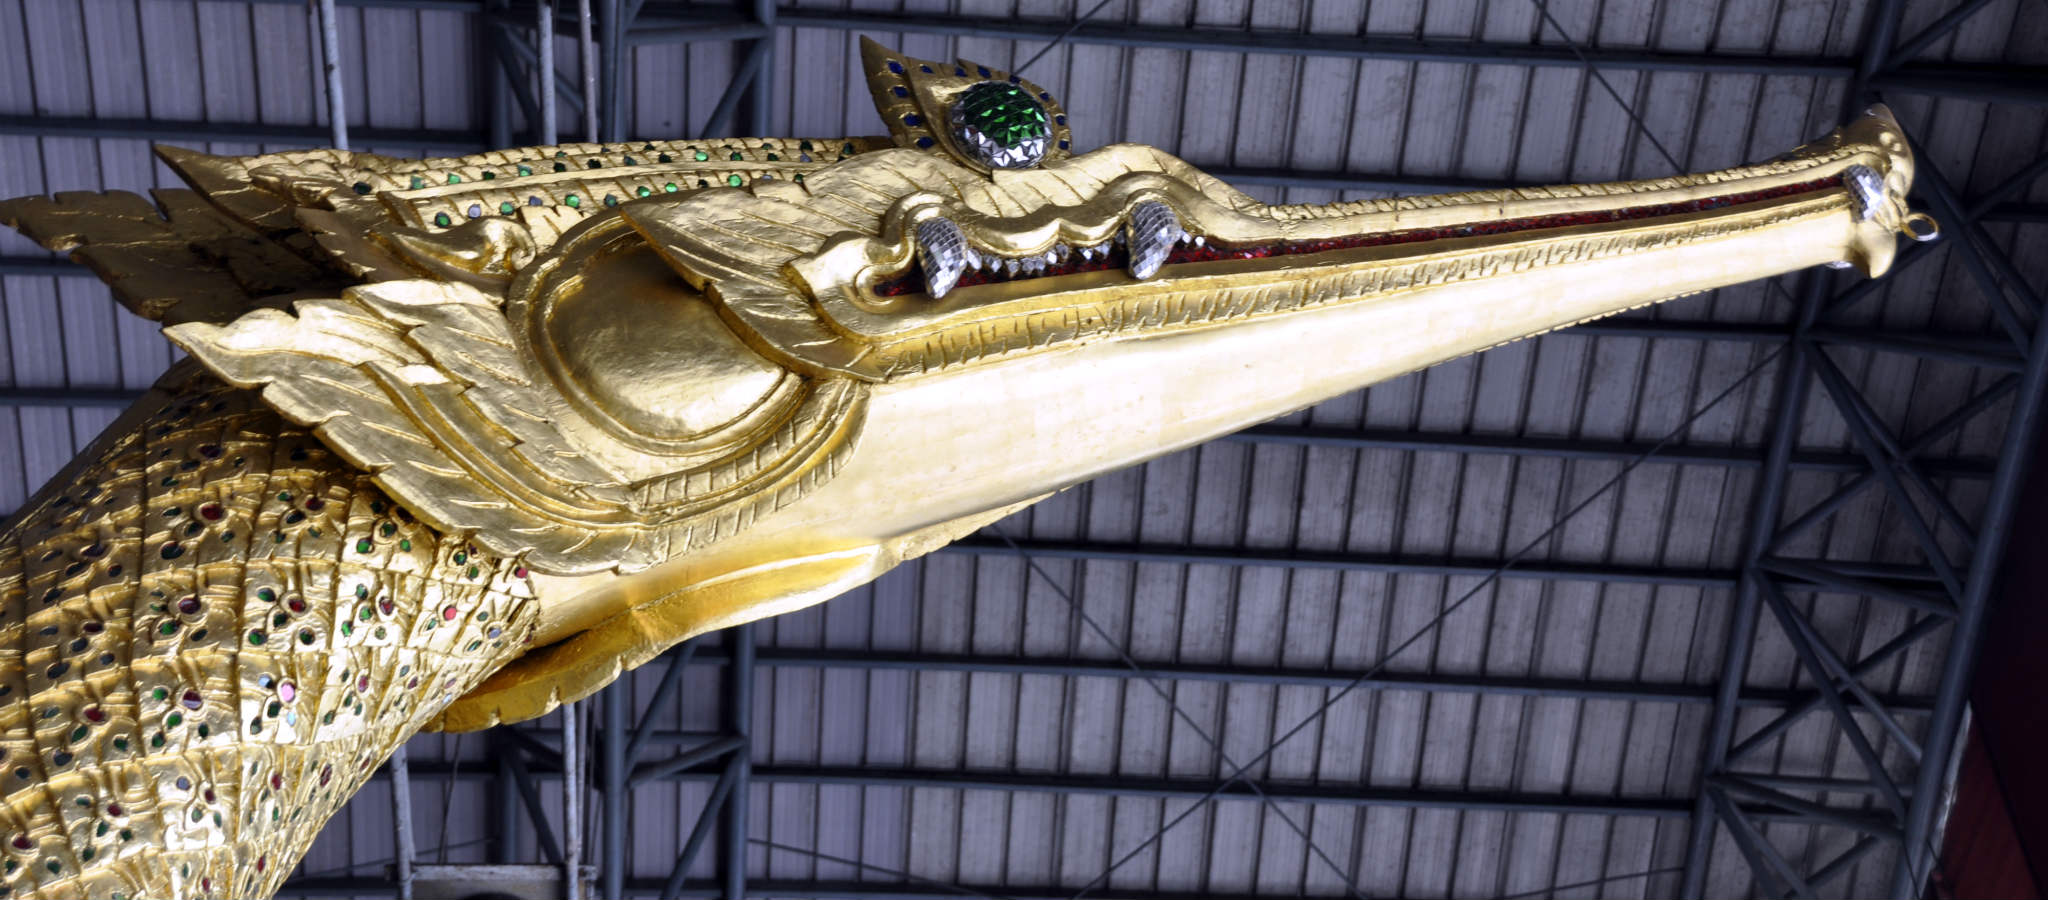 The swan head of the figurehead of the Suphannahong Royal barge in the National Museum of Royal Barges in Bangkok.